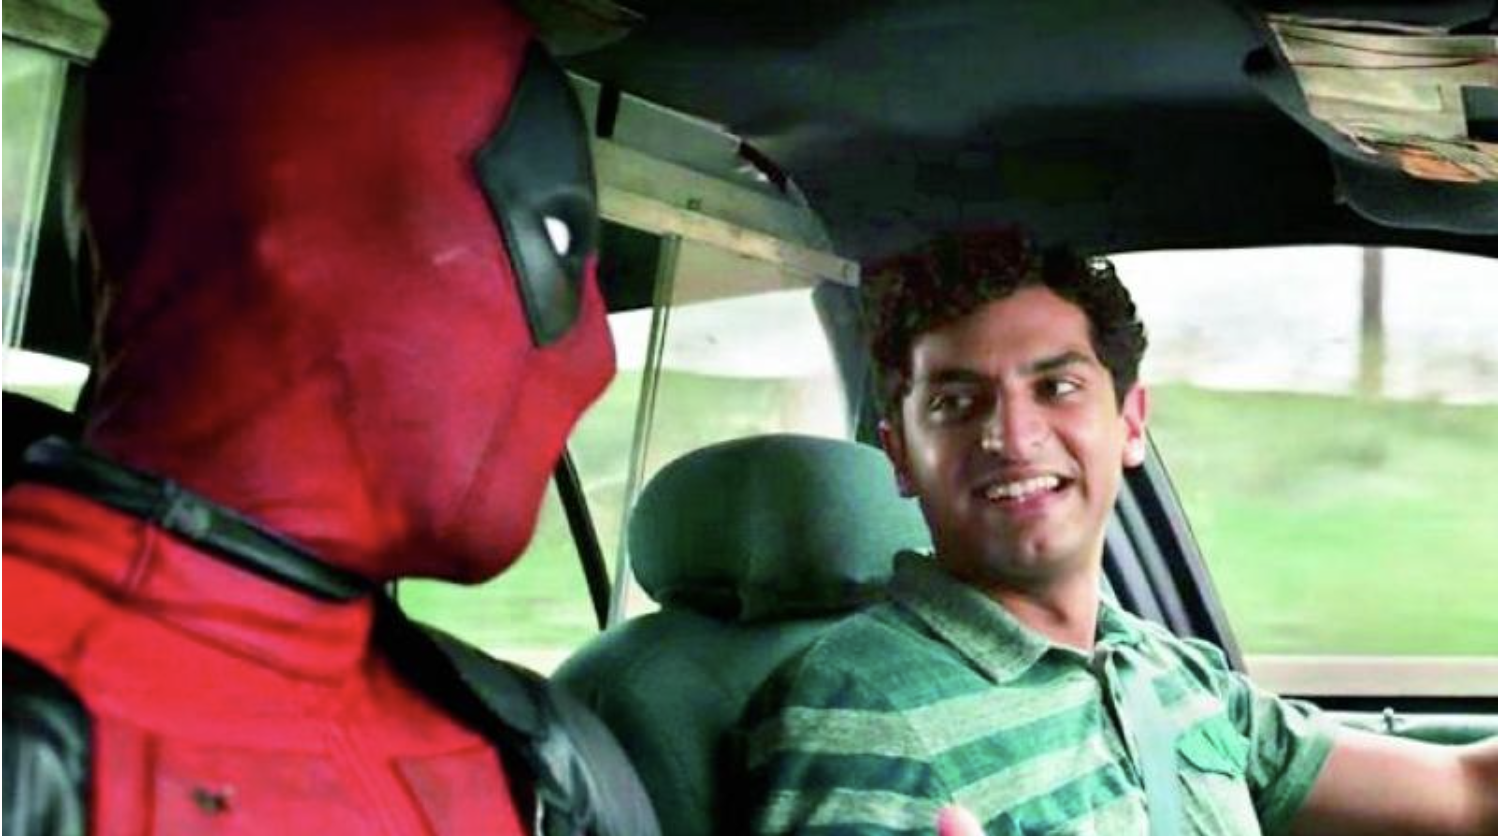 A friendly-looking cabbie drives Deadpool